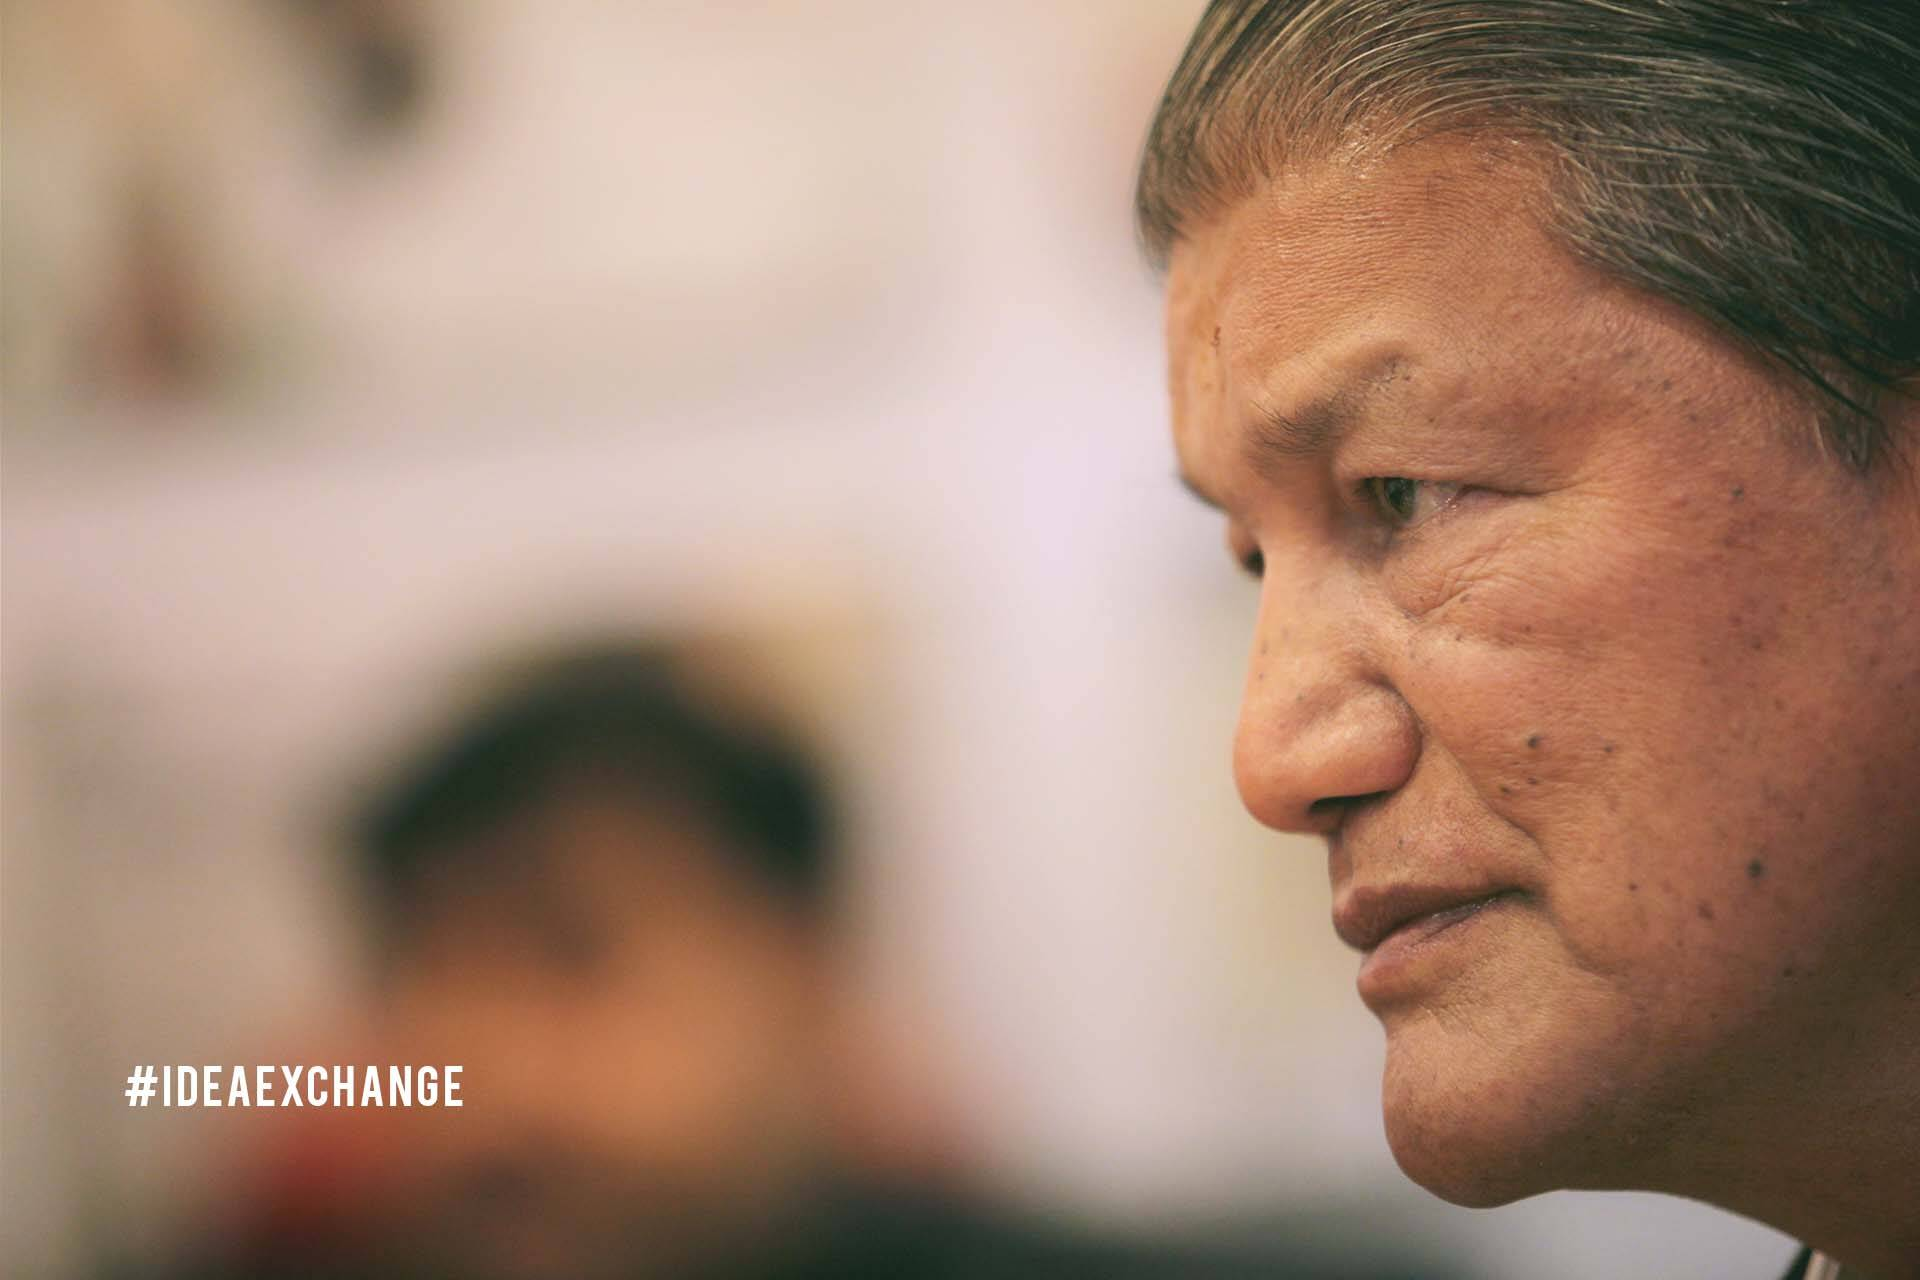 CM Harish Rawat on Niti Aayog